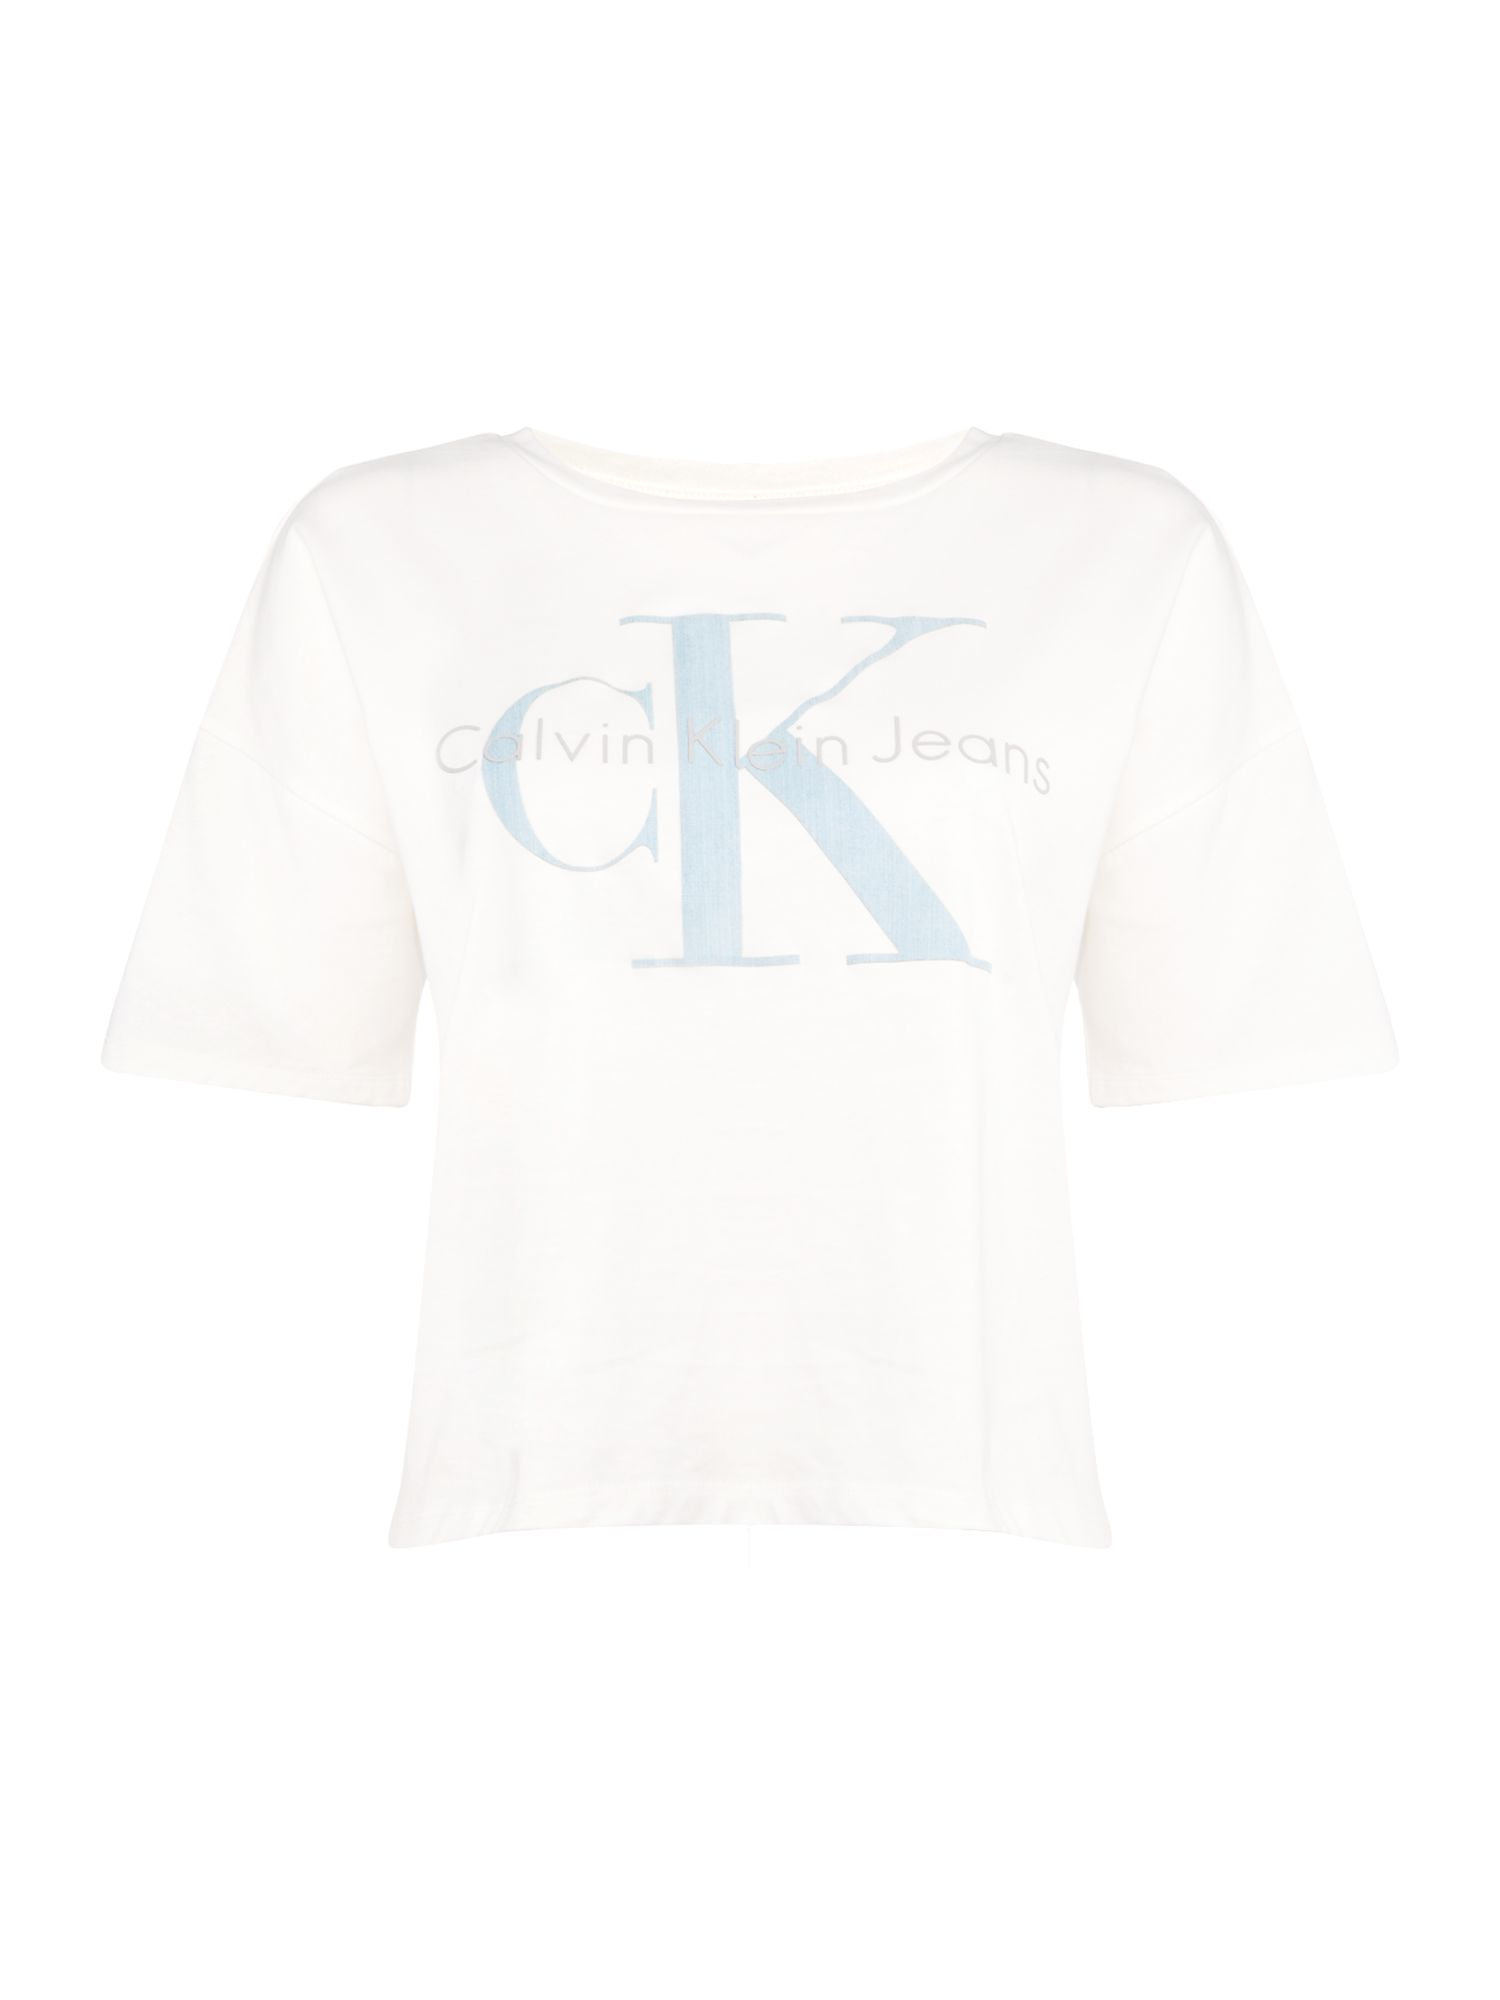 Calvin Klein Short sleeve cropped jersey top in cloud dancer, White